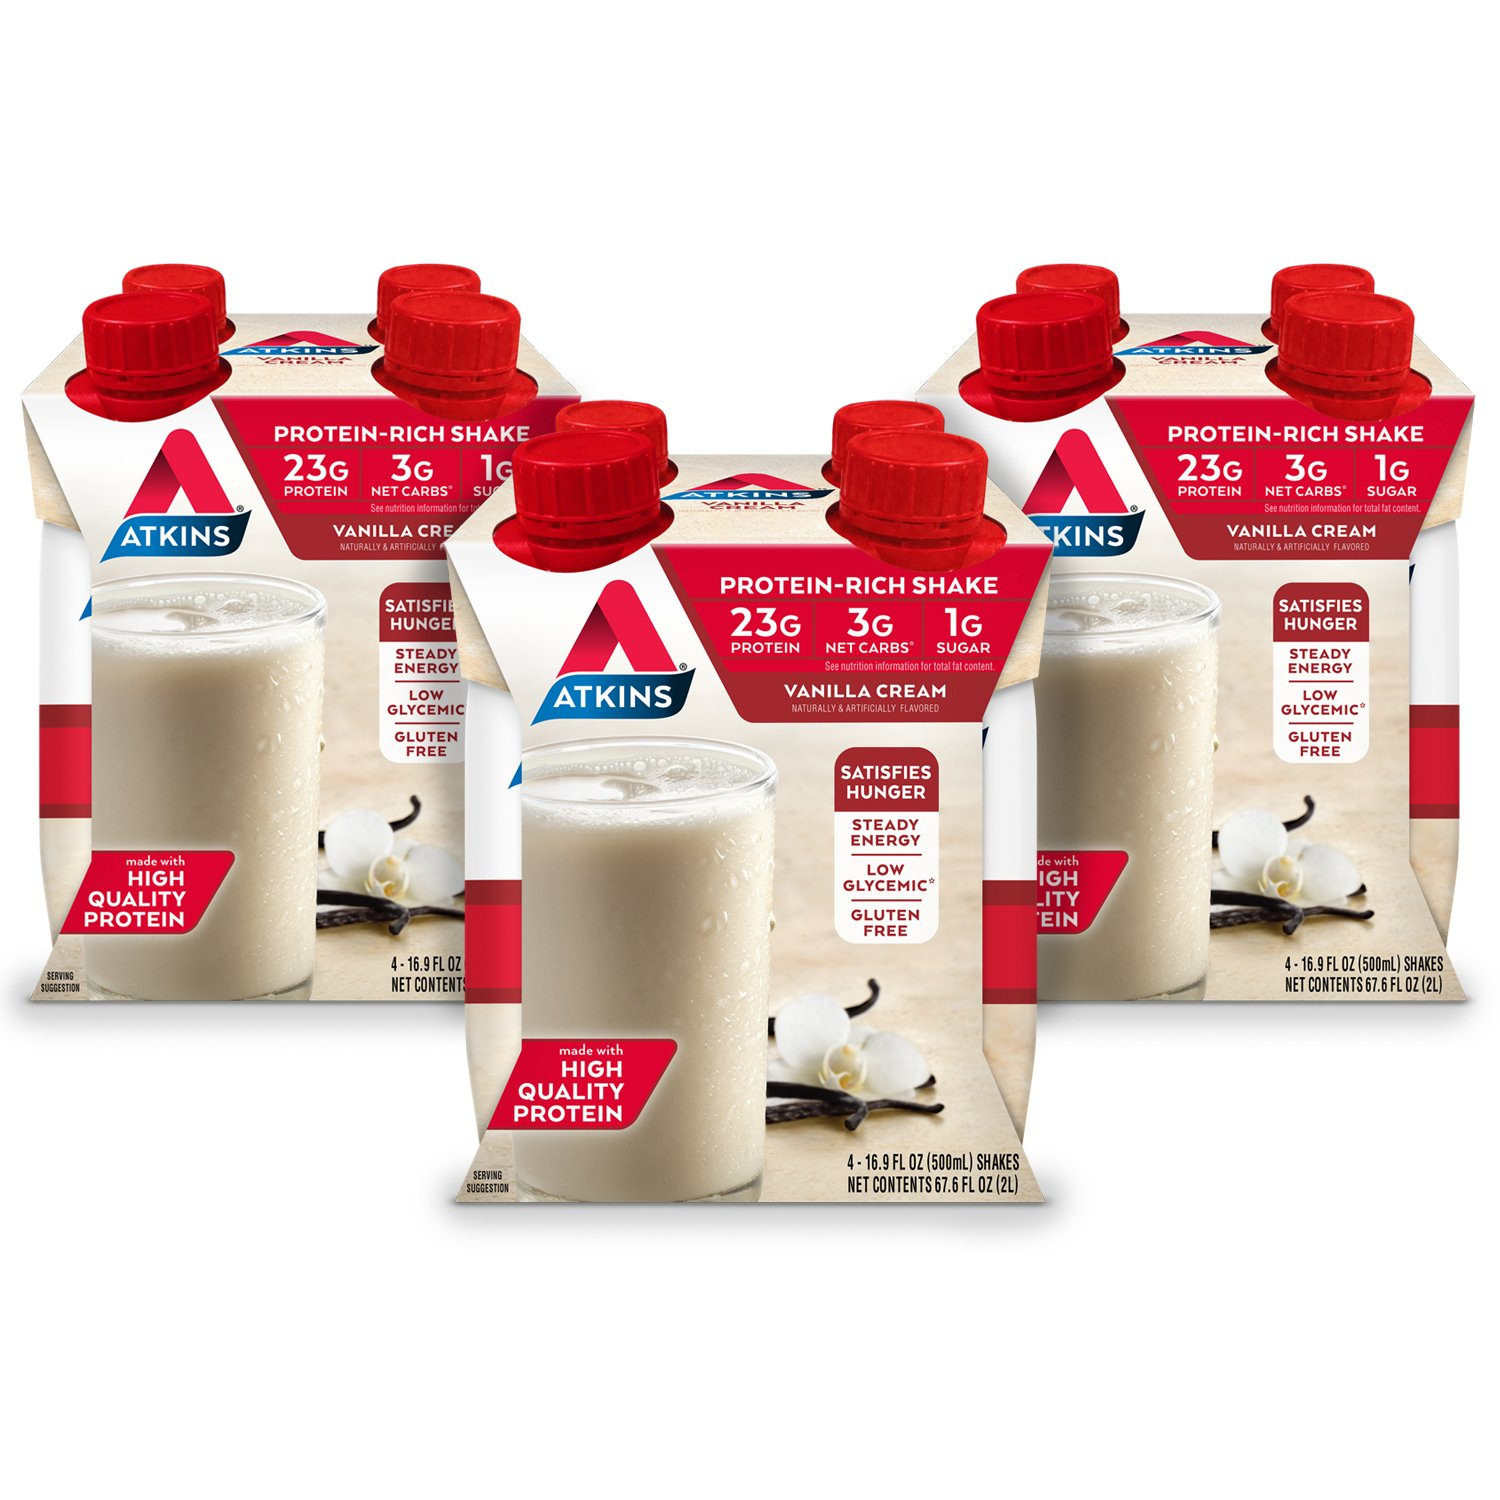 Atkins Ready to Drink Meal-Sized Protein-Rich Shake, Gluten Free, Vanilla Cream, 4 Count (Pack of 3)